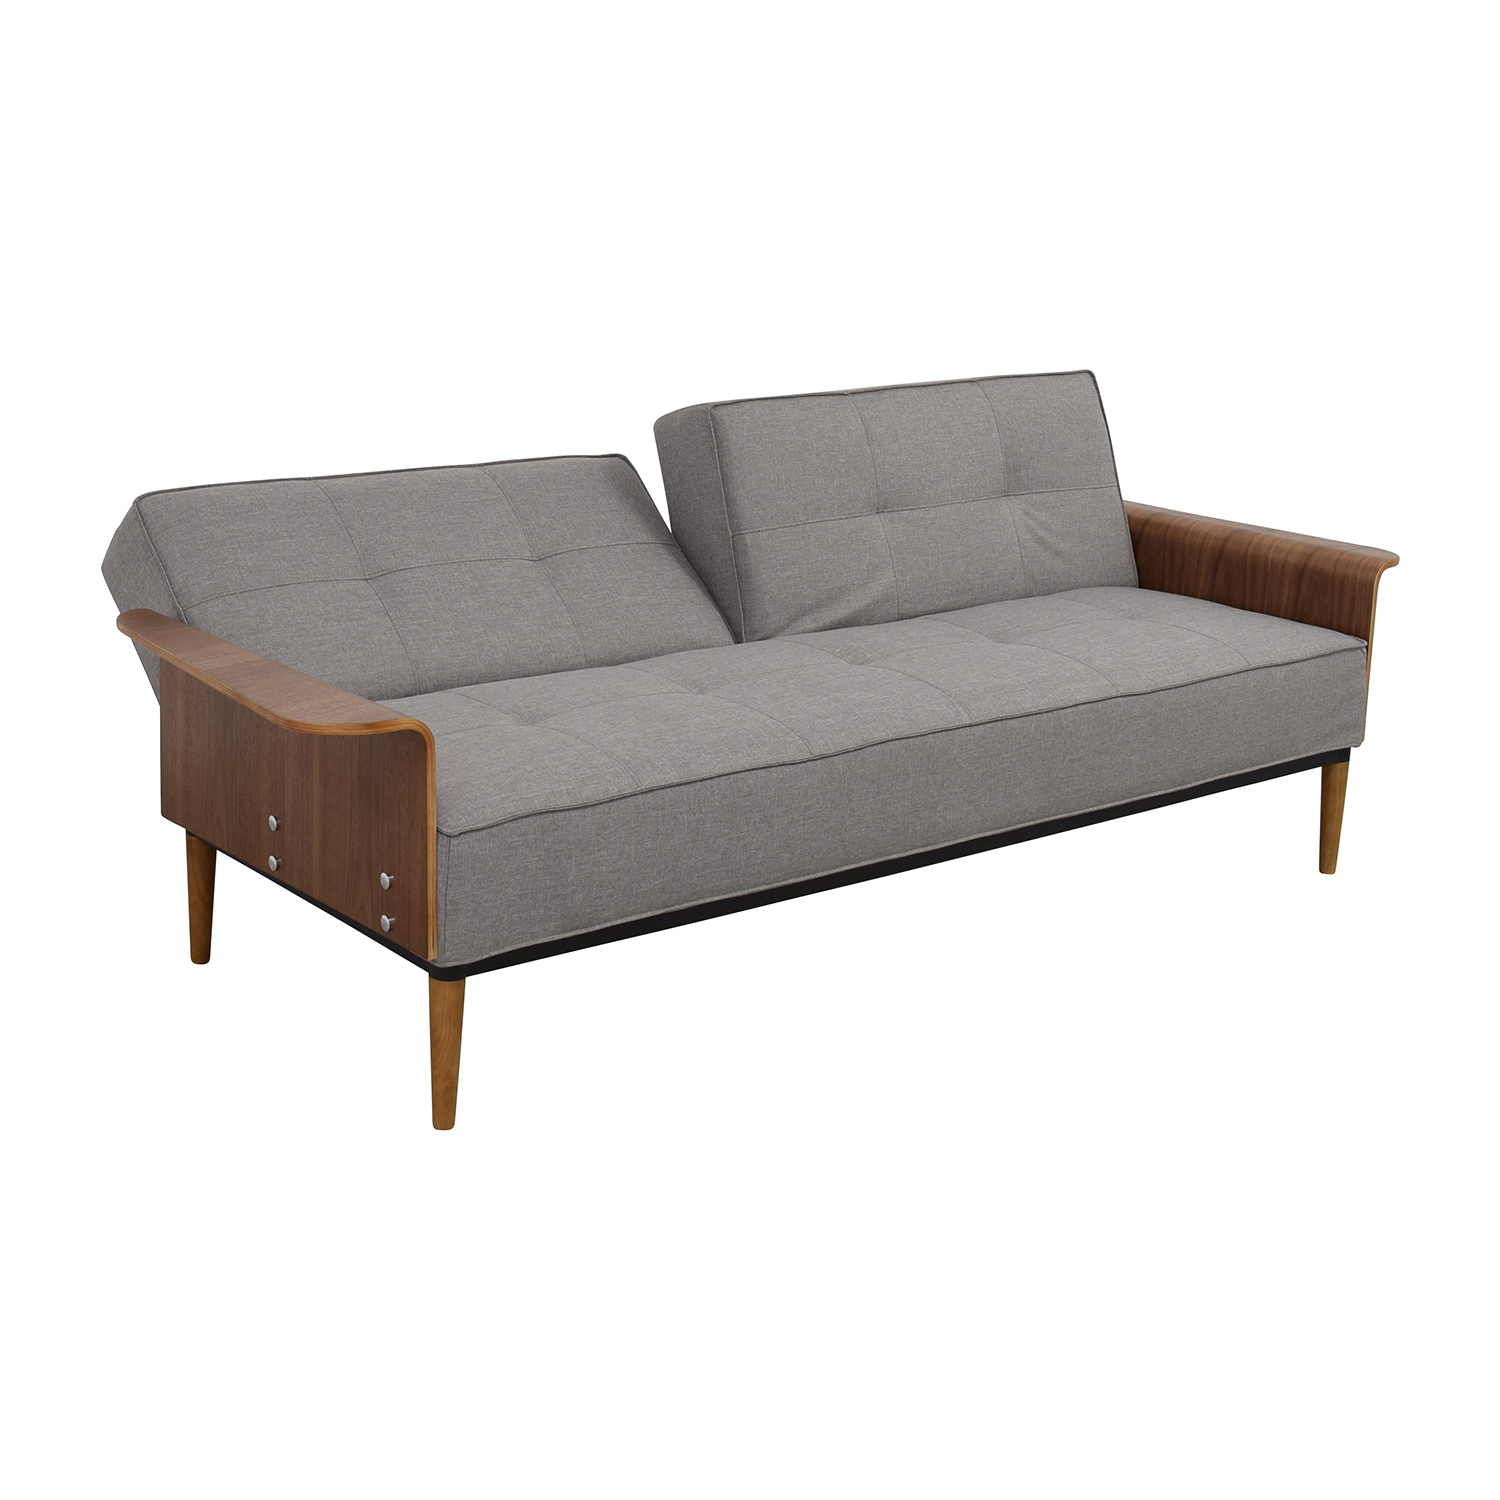 50 off inmod inmod bjorg tufted light grey sofabed sofas for In mod furniture